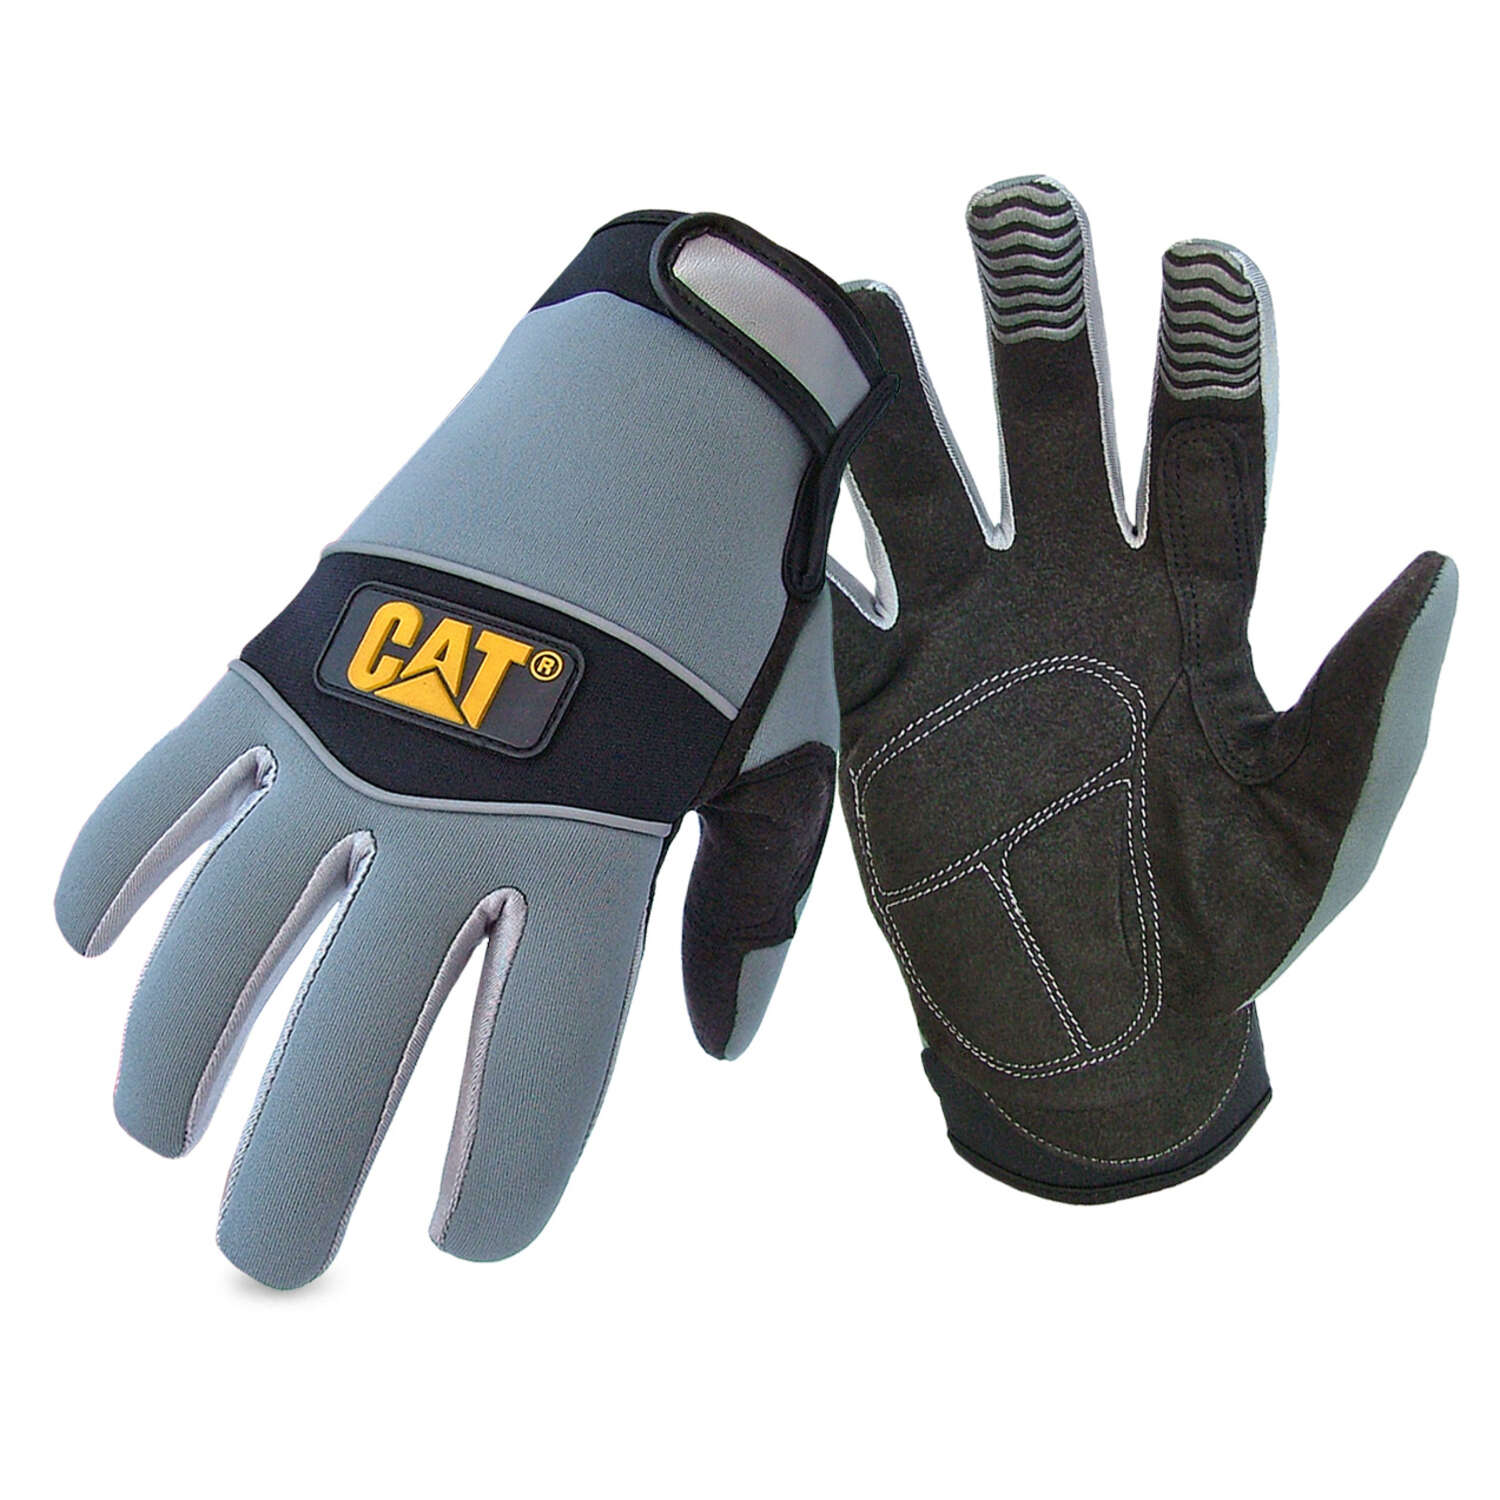 Caterpillar Men's Indoor/Outdoor Padded Mechanic's Glove Black/Gray XL 1 pair